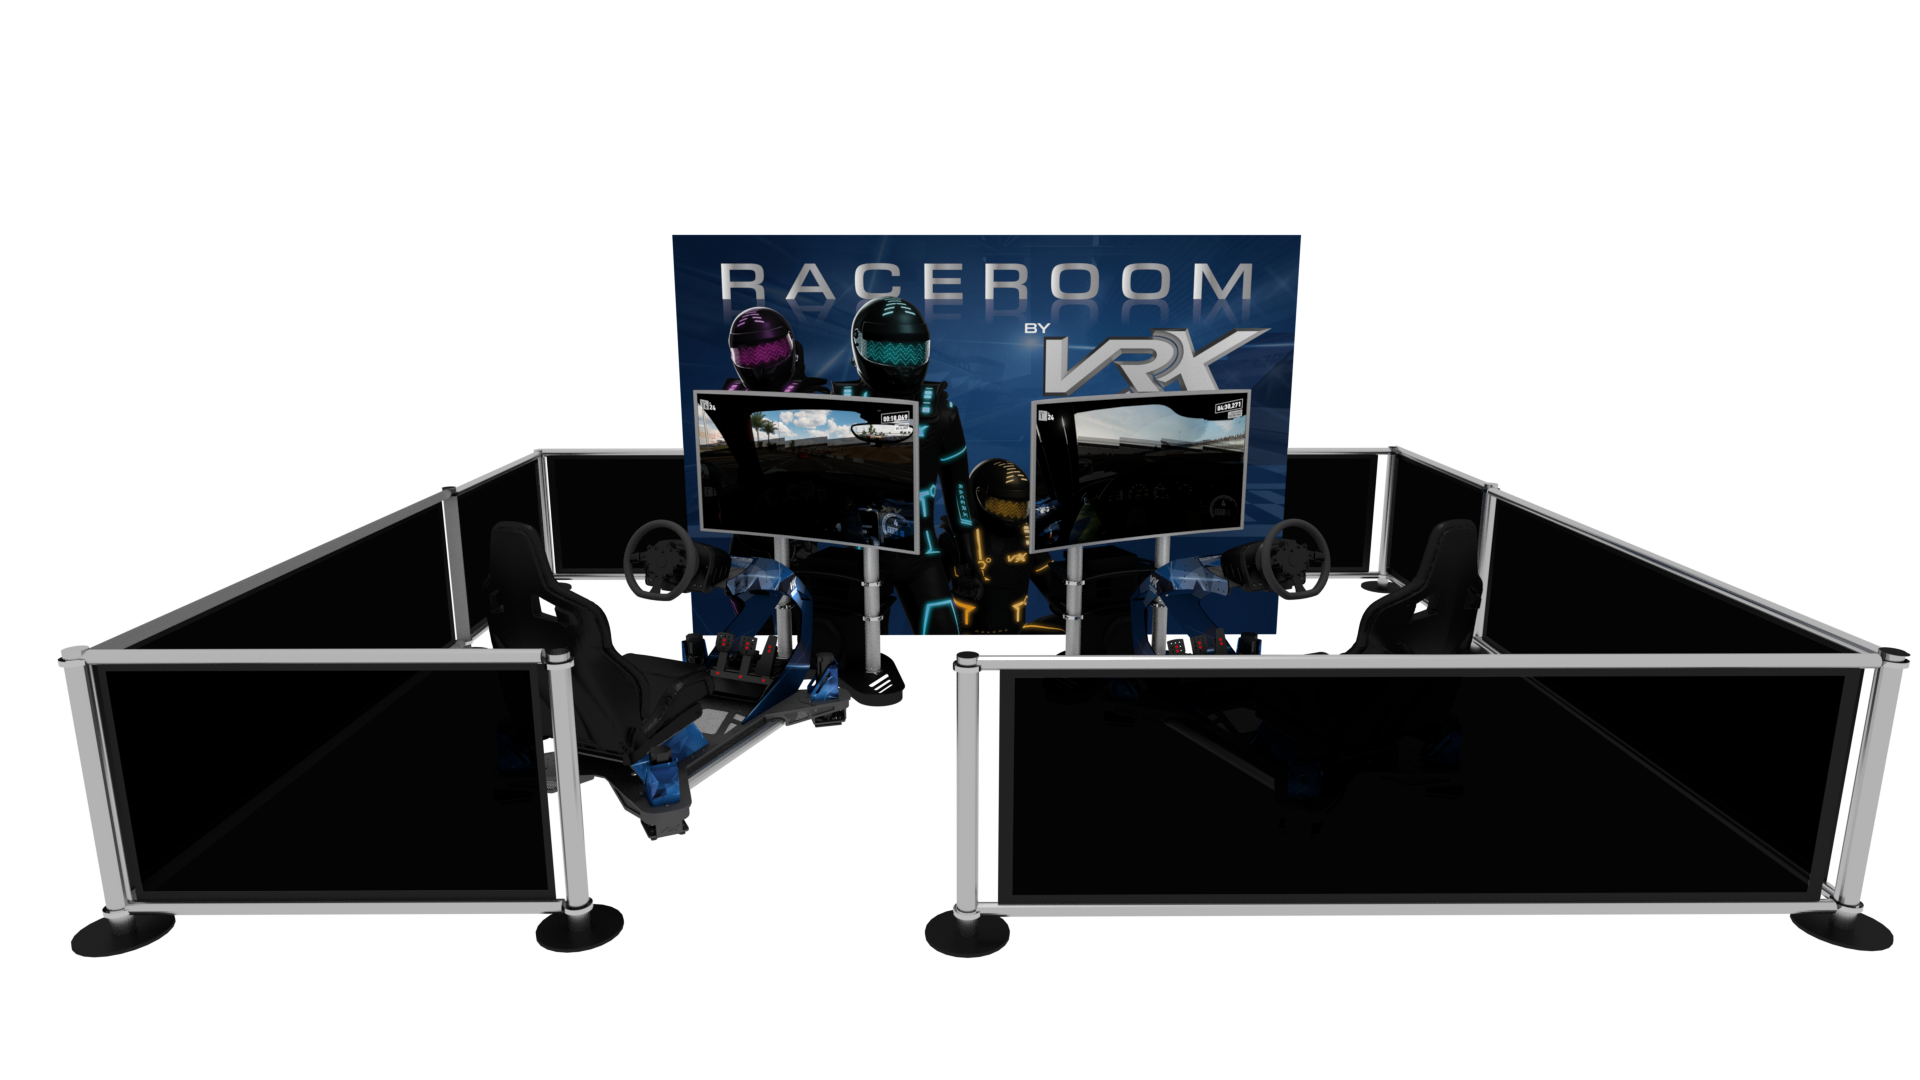 vrx raceroom bronze simulators